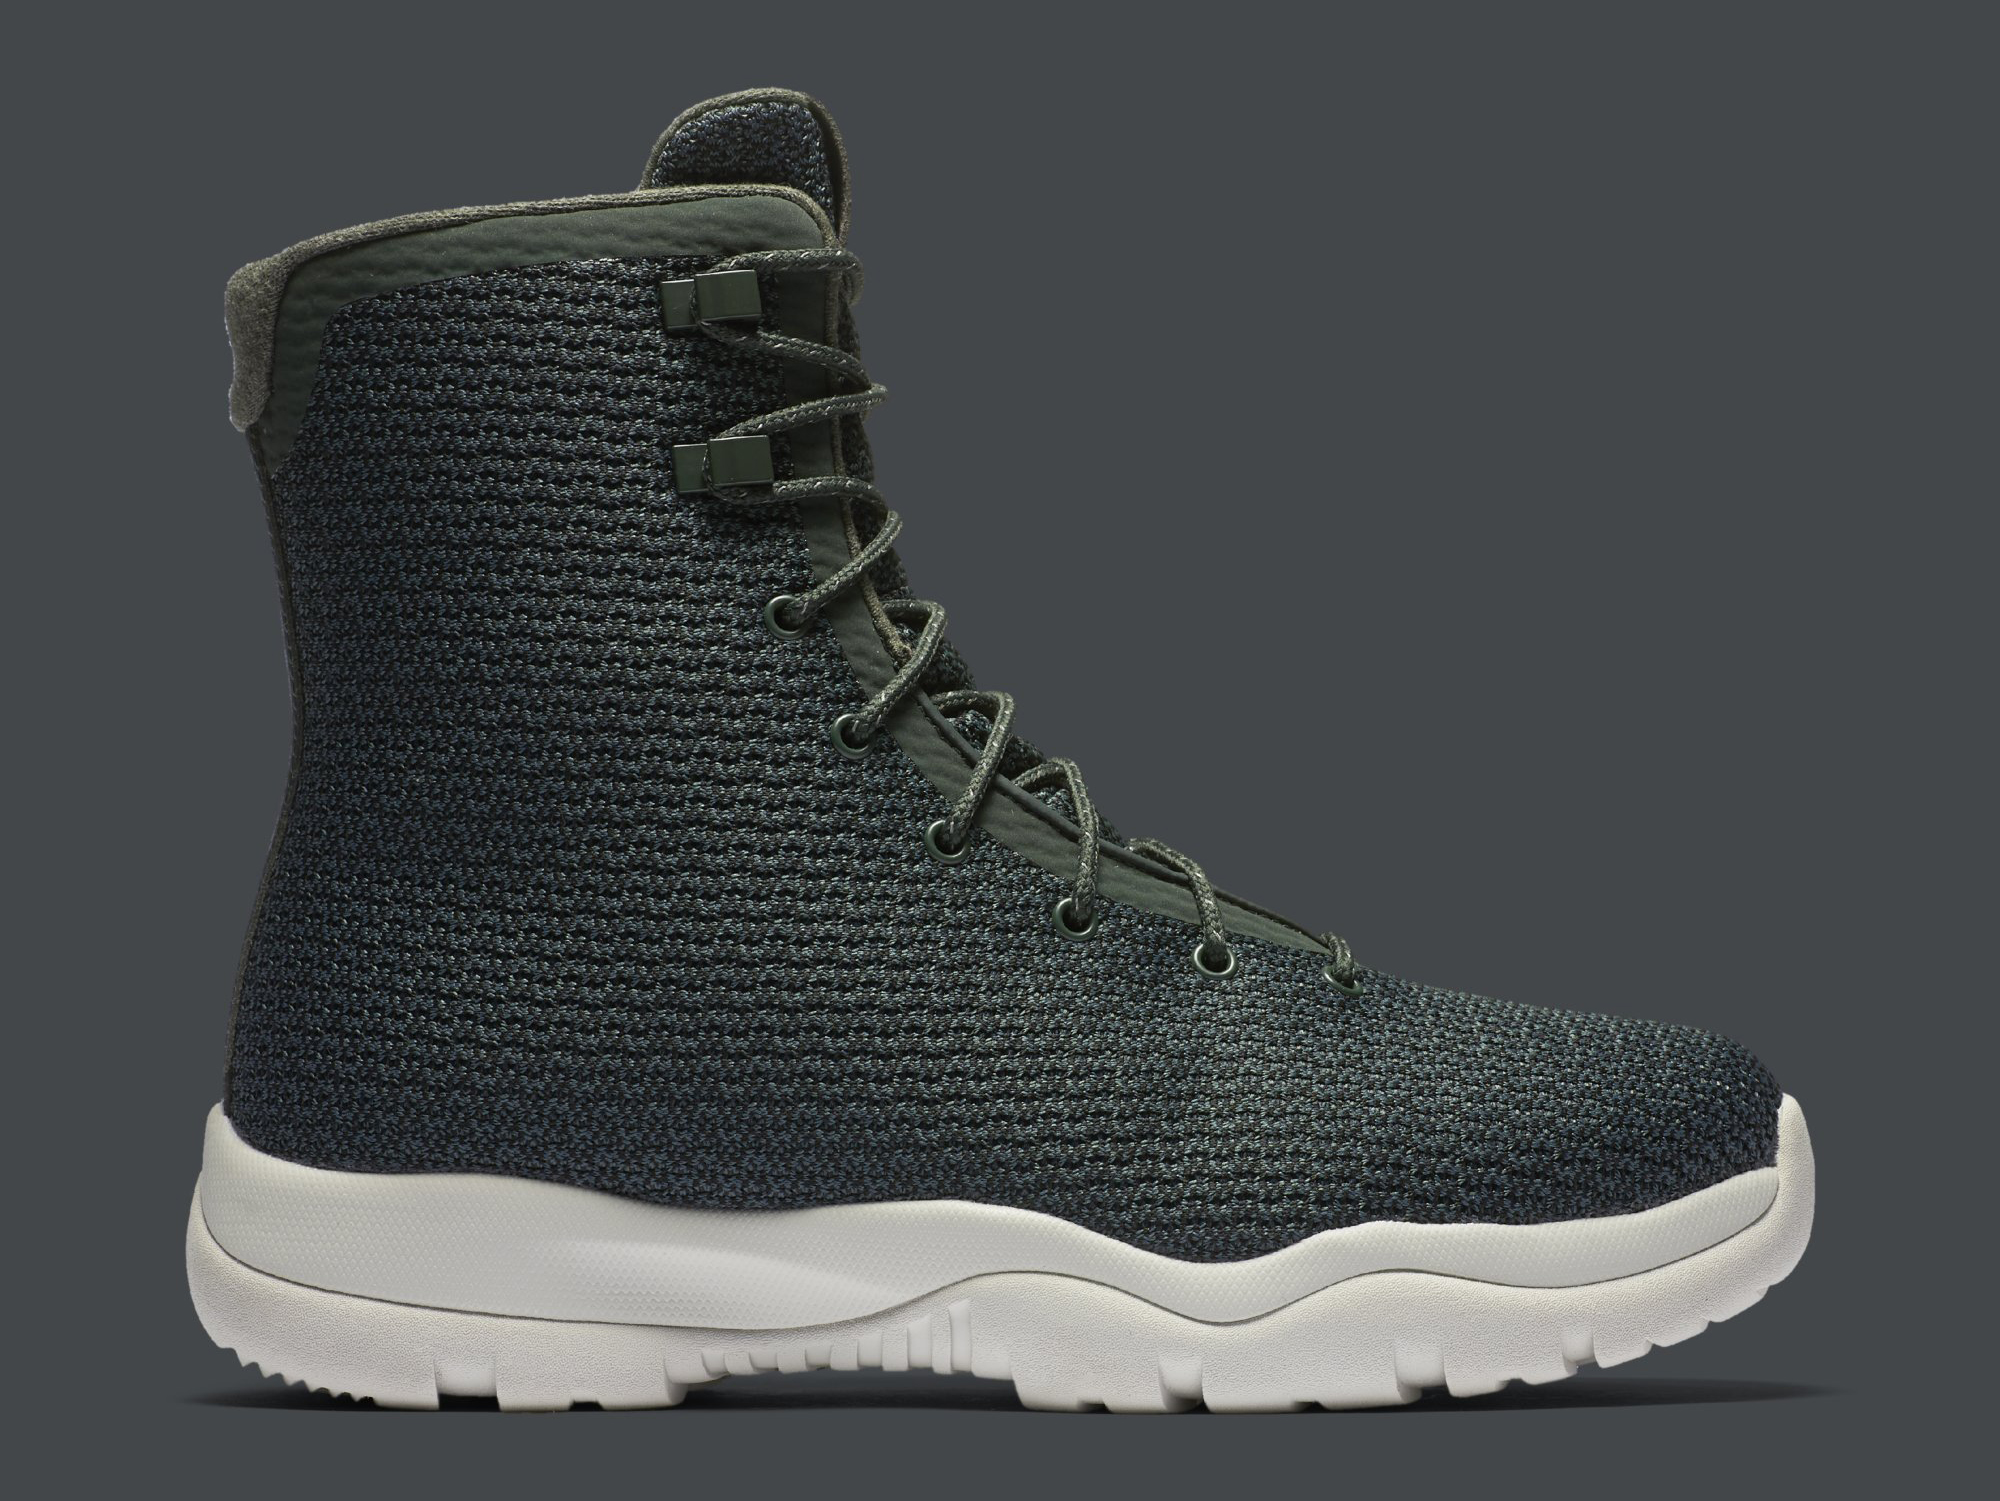 Jordan Future Boot Grove Green 854554-300 Profile